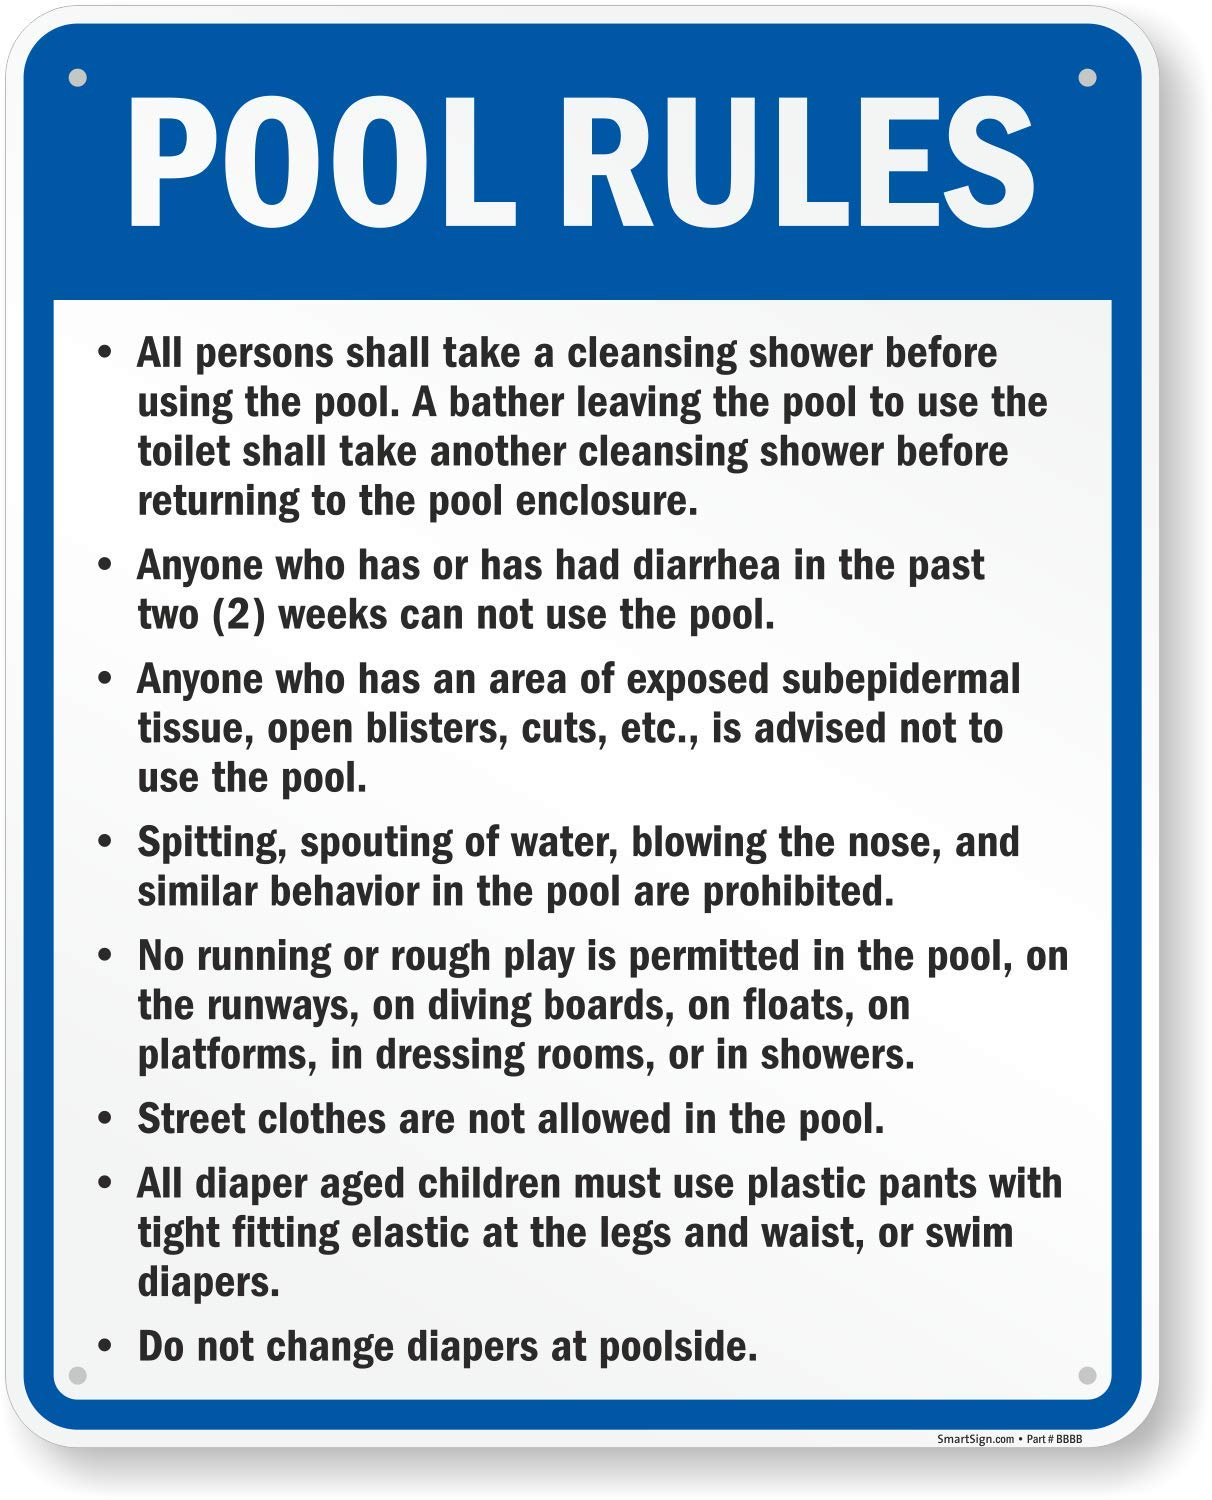 Indiana Pool Rules Sign, 30'' x 24'' by SmartSign